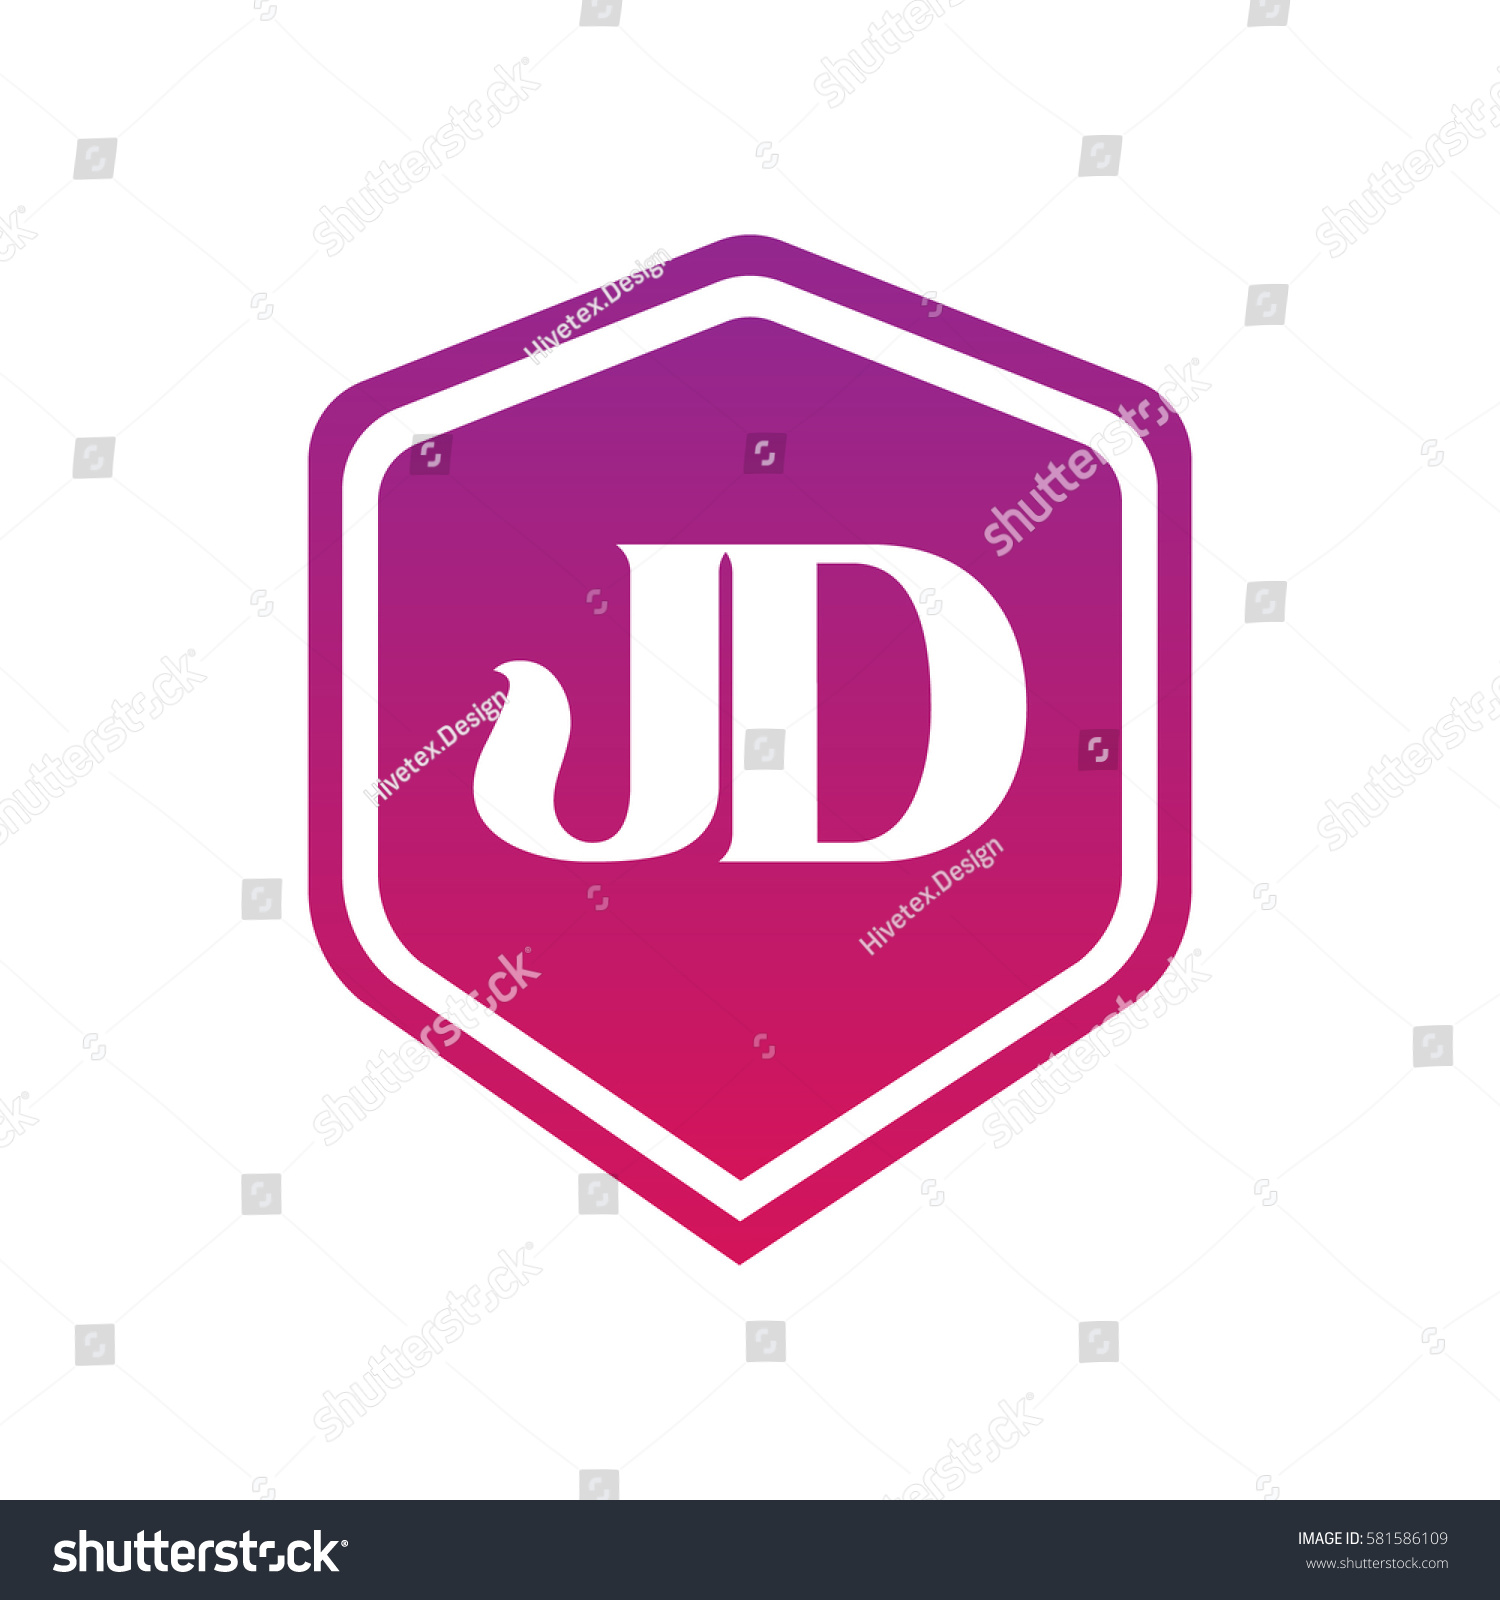 jd logo stock vector royalty free 581586109 https www shutterstock com image vector jd logo 581586109